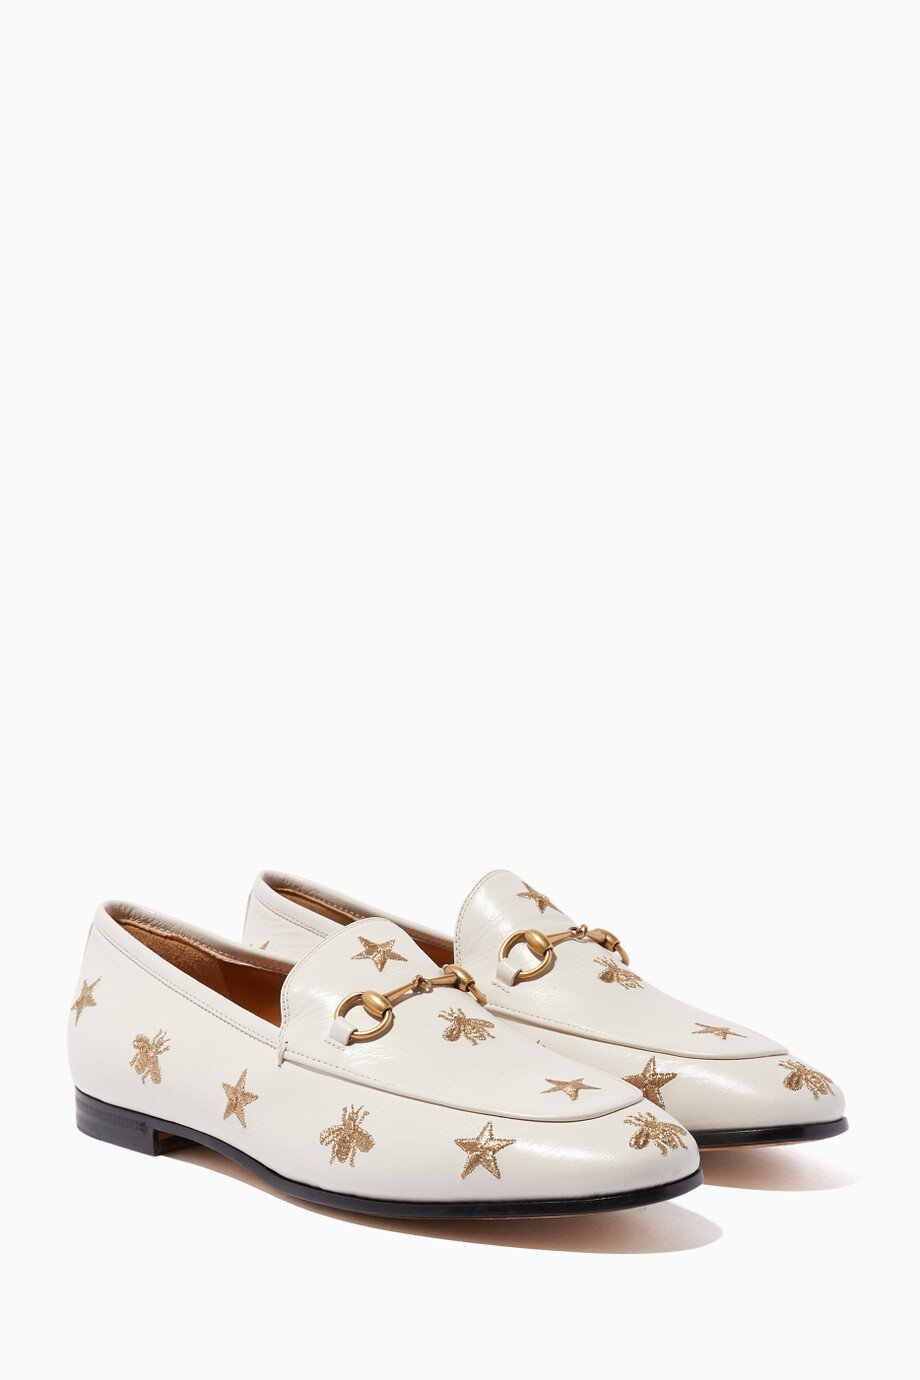 f1dc16d1e53 Shop Gucci Neutral Gucci Jordaan Embroidered Leather Loafers for ...